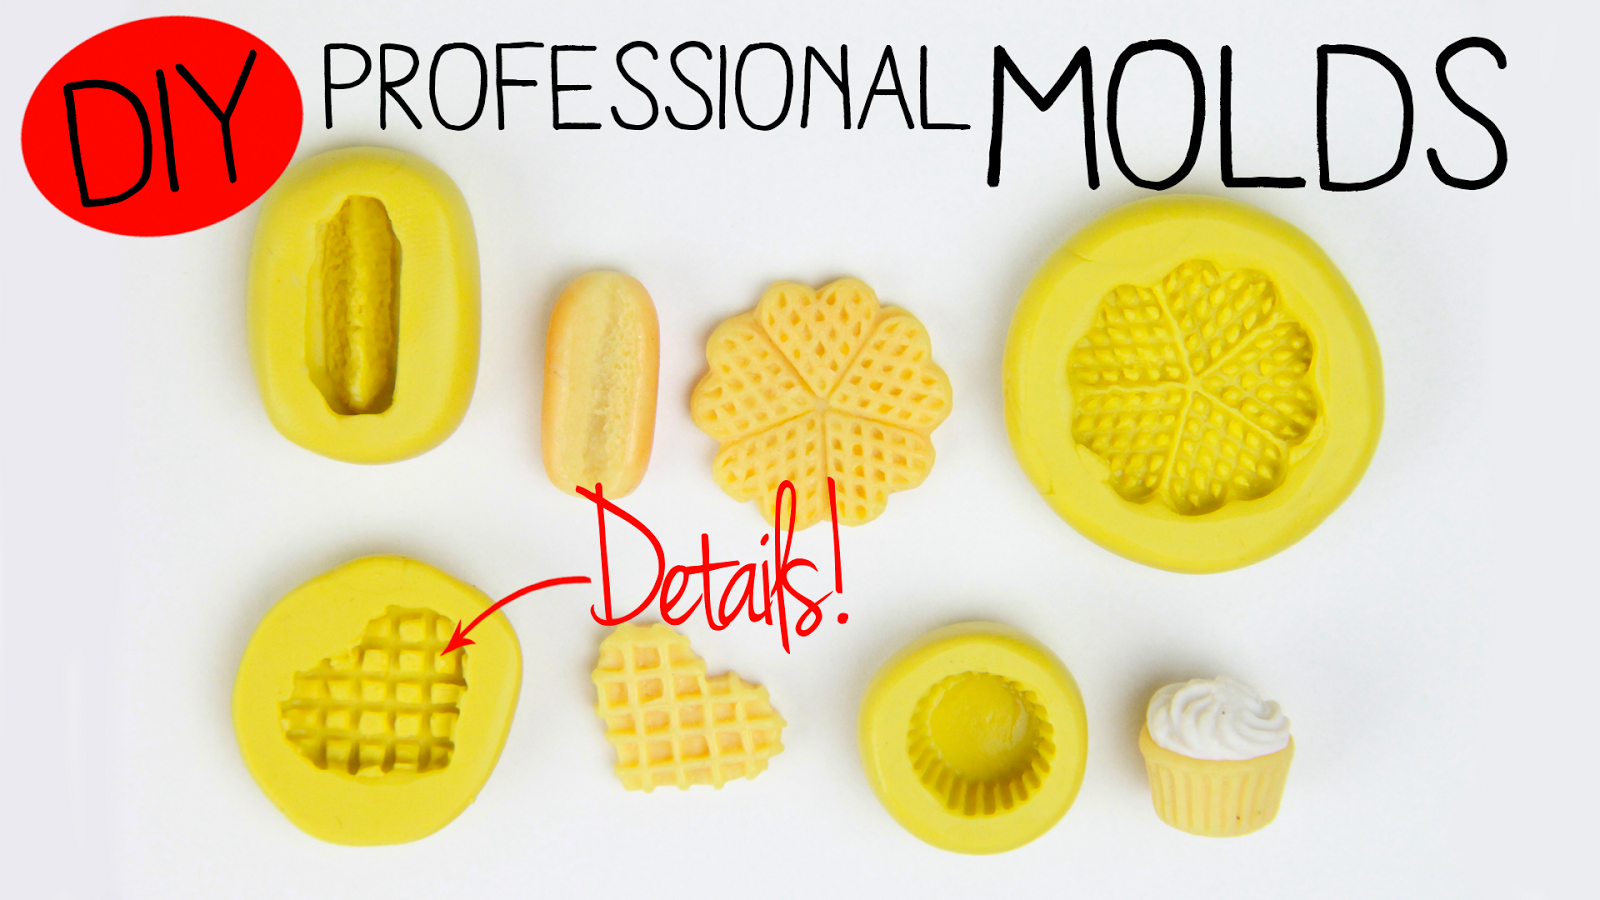 Toni Ellison: How To Make Professional Molds: Polymer Clay